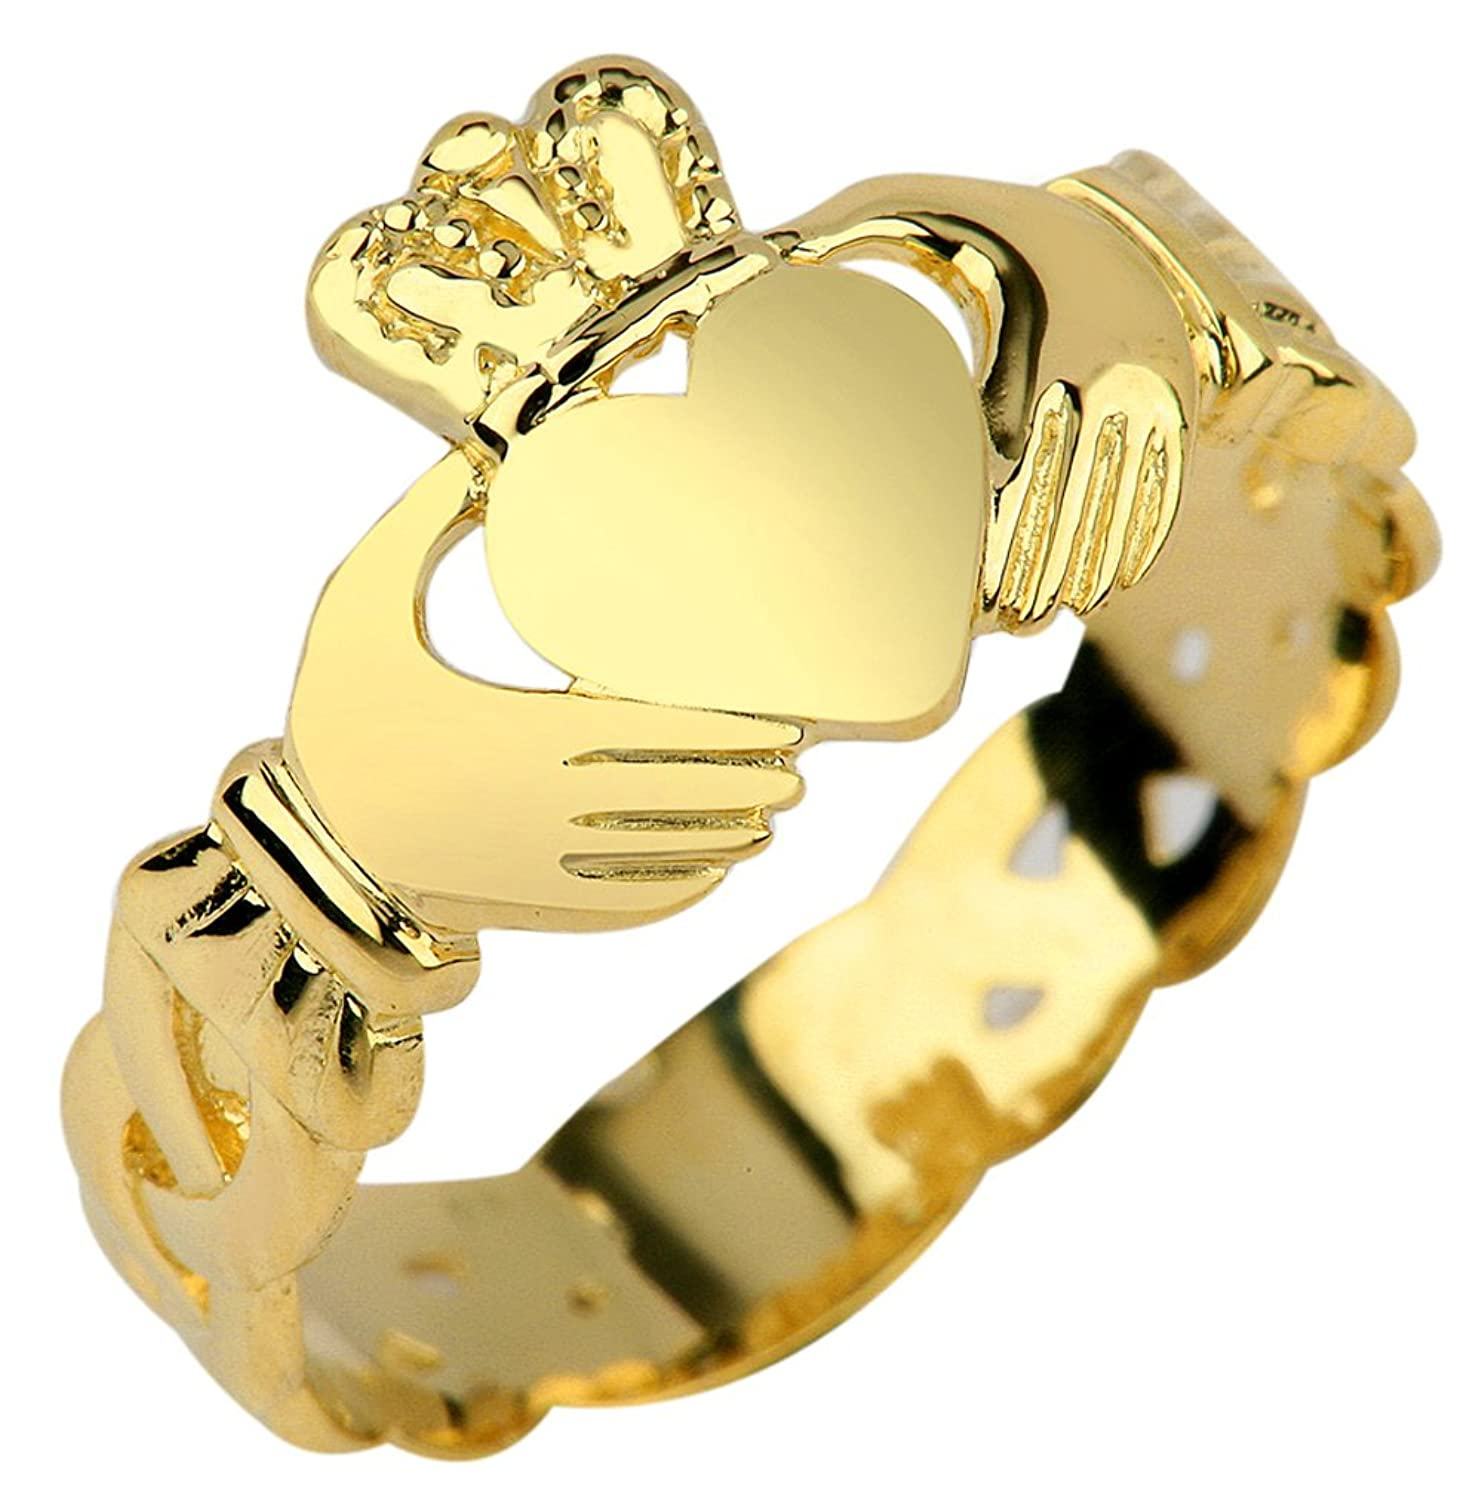 Amazon.com: Ladies 14k Gold Claddagh Ring with Trinity Band: Rings ...